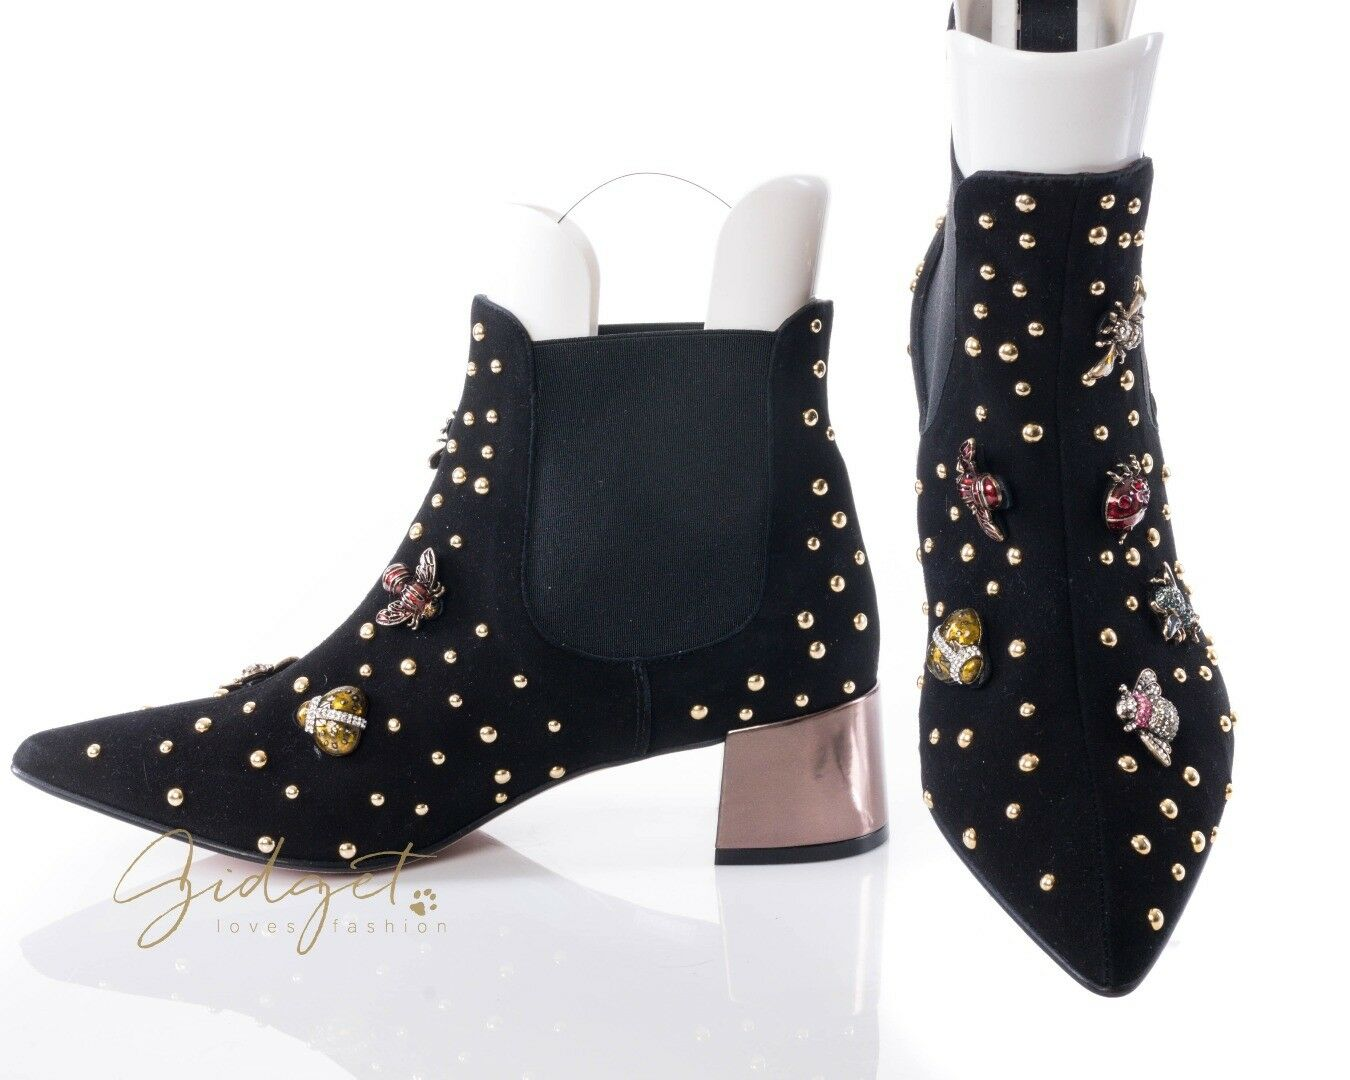 RAS shoes Amalfi Size 38   7 Black Black Black Suede Jeweled Bug Booties Ankle Boots 28ddfd